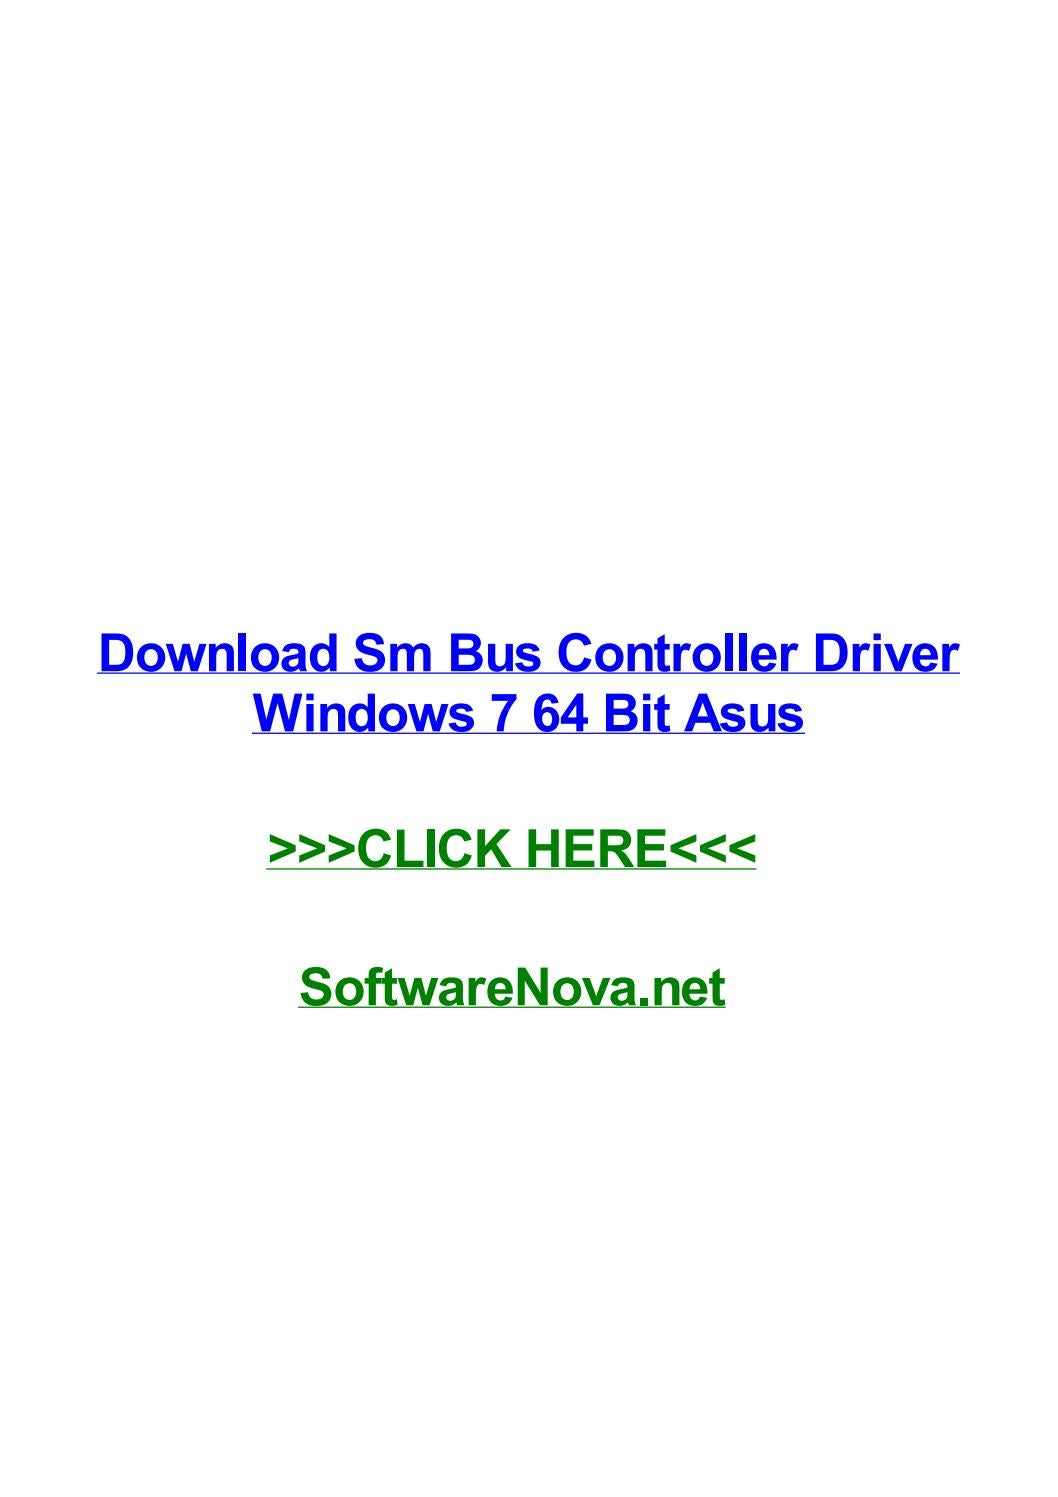 controleur de bus sm windows 7 64 bits asus